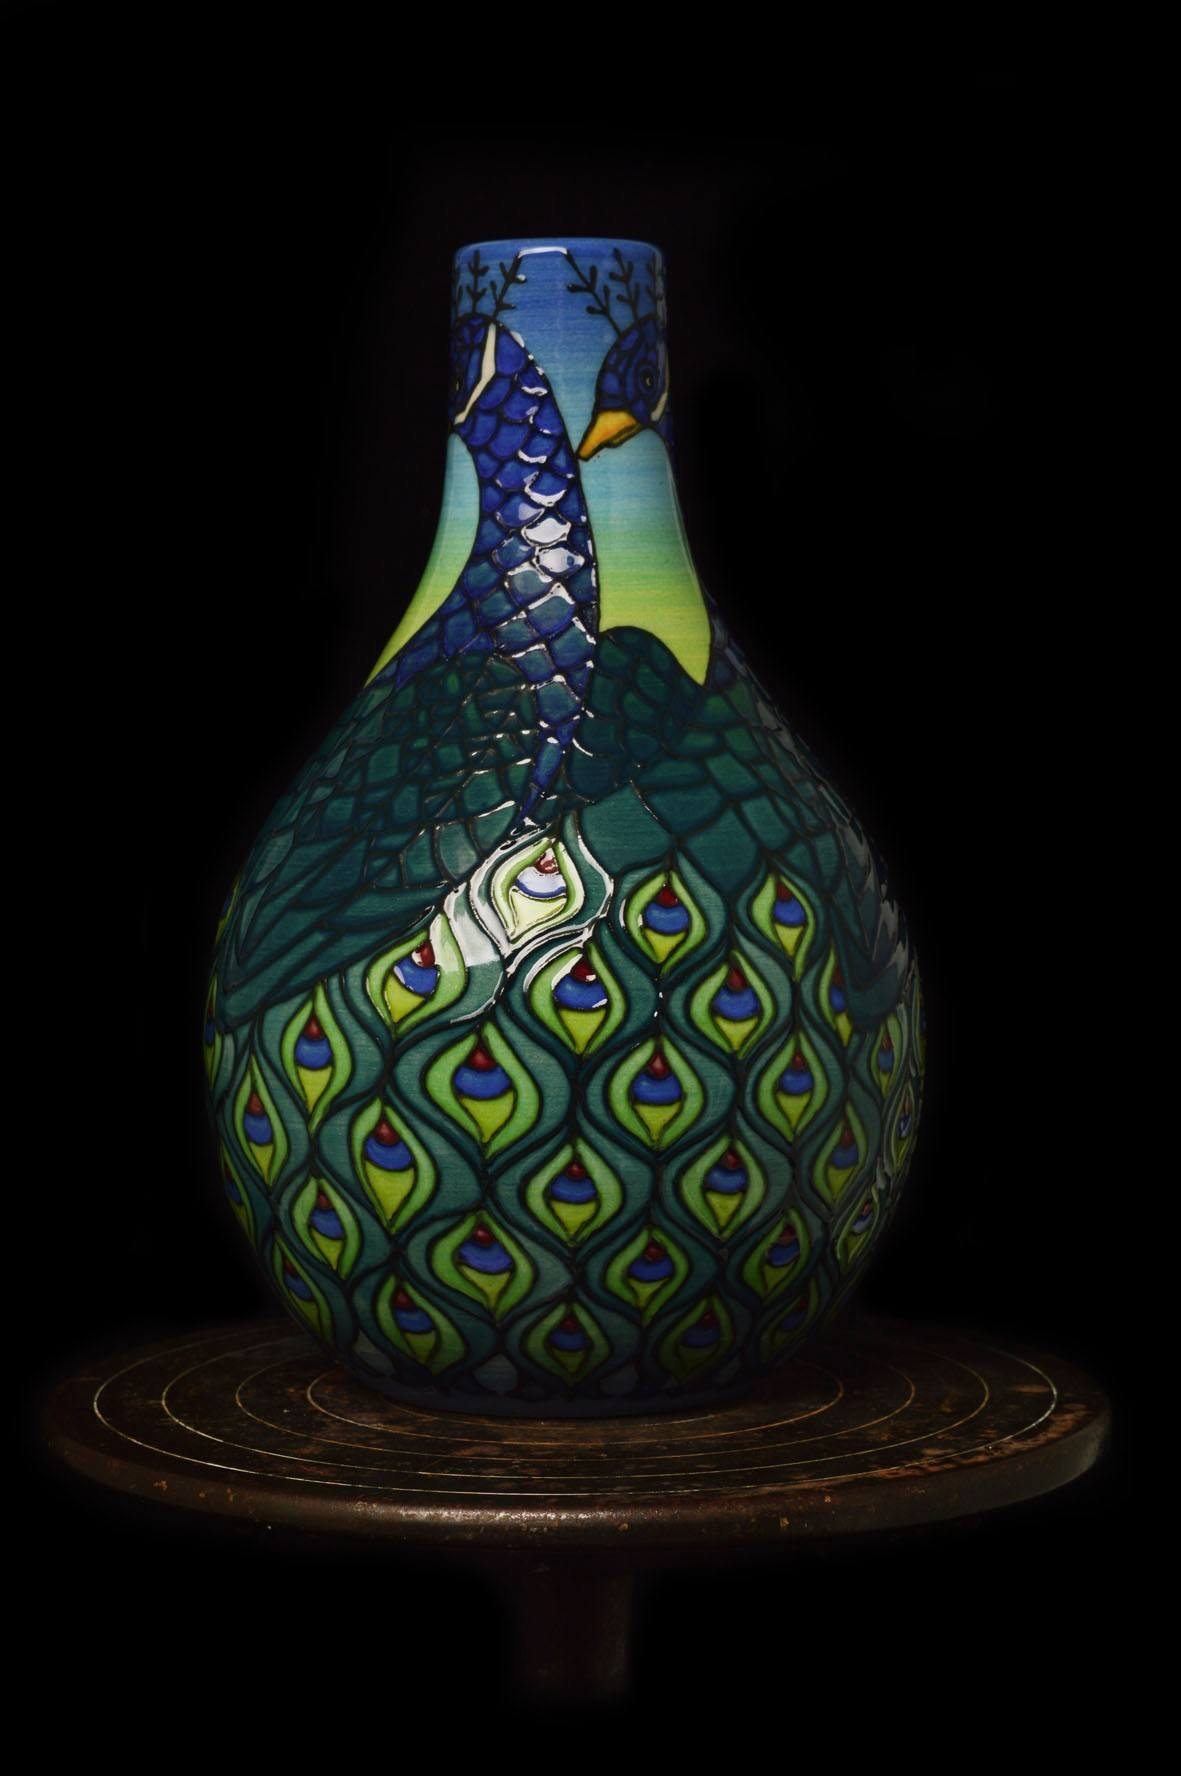 1417542399peacock-sf-bottle-5.jpg